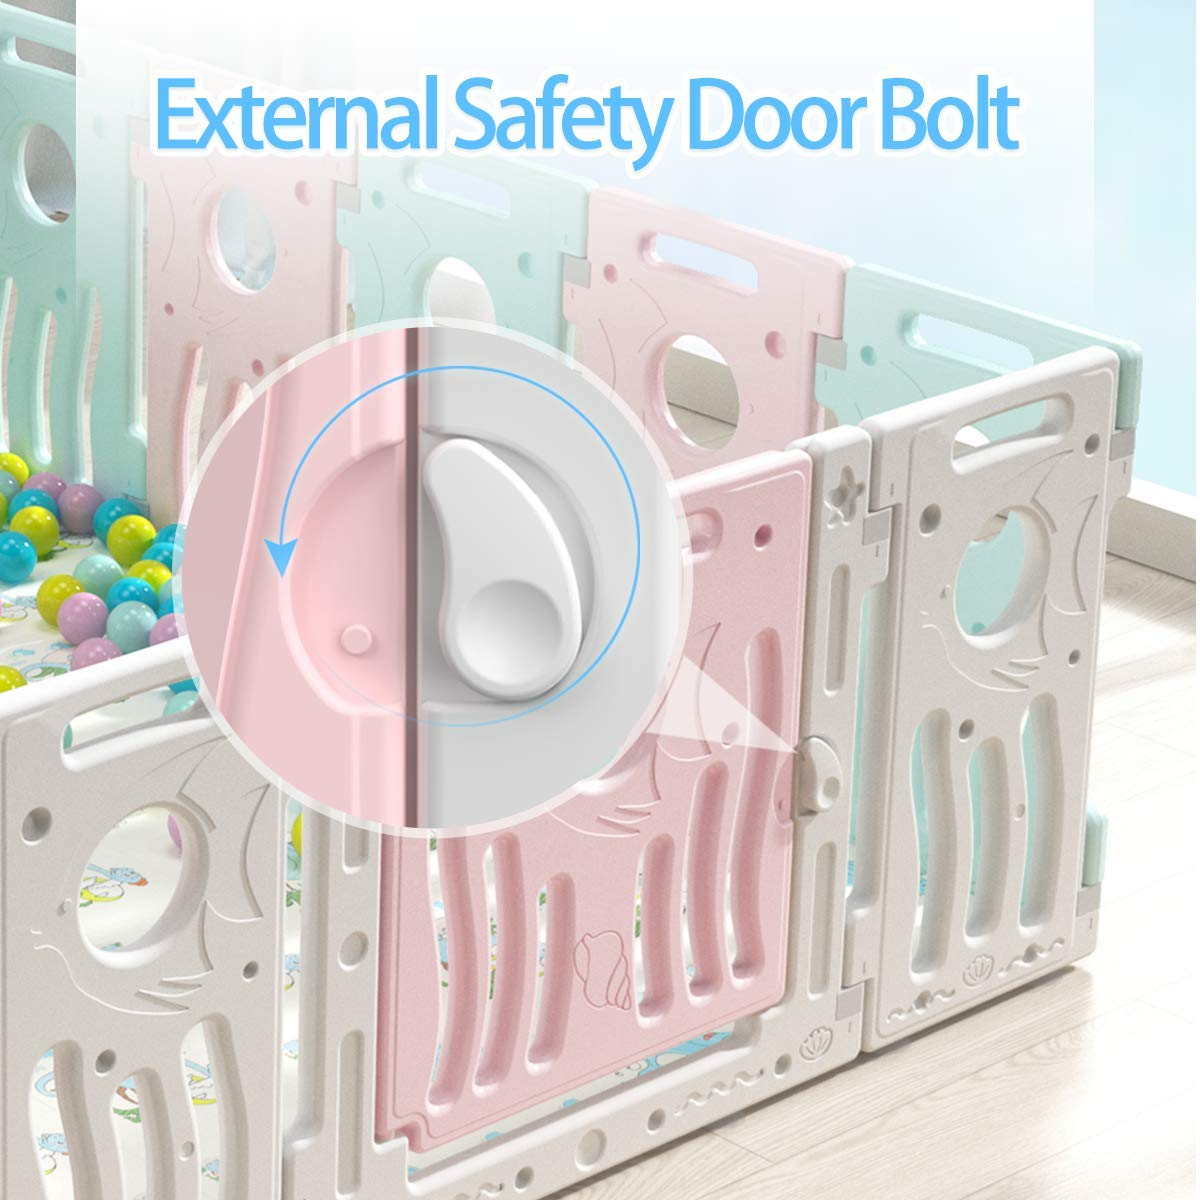 Multicolor 14 Panel KingSo Baby Playpen Foldable Kids Baby Safety Play Yard Activity Centre with External Lock Gate for Home Indoor